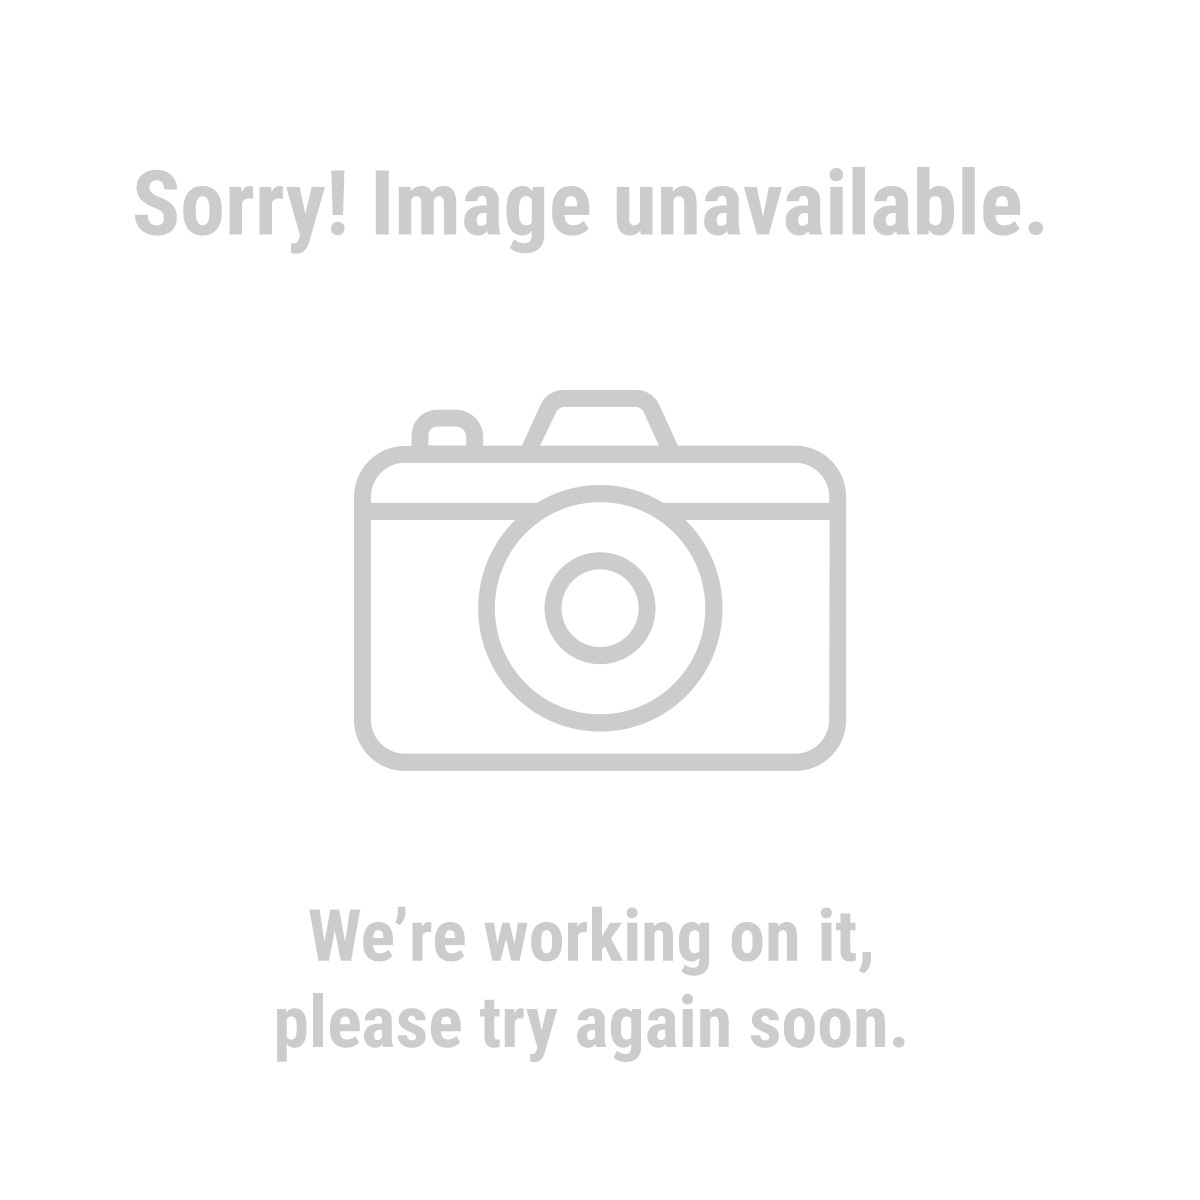 Warrior 61315 6 Piece Triangle Sandpaper Assortment for Wood